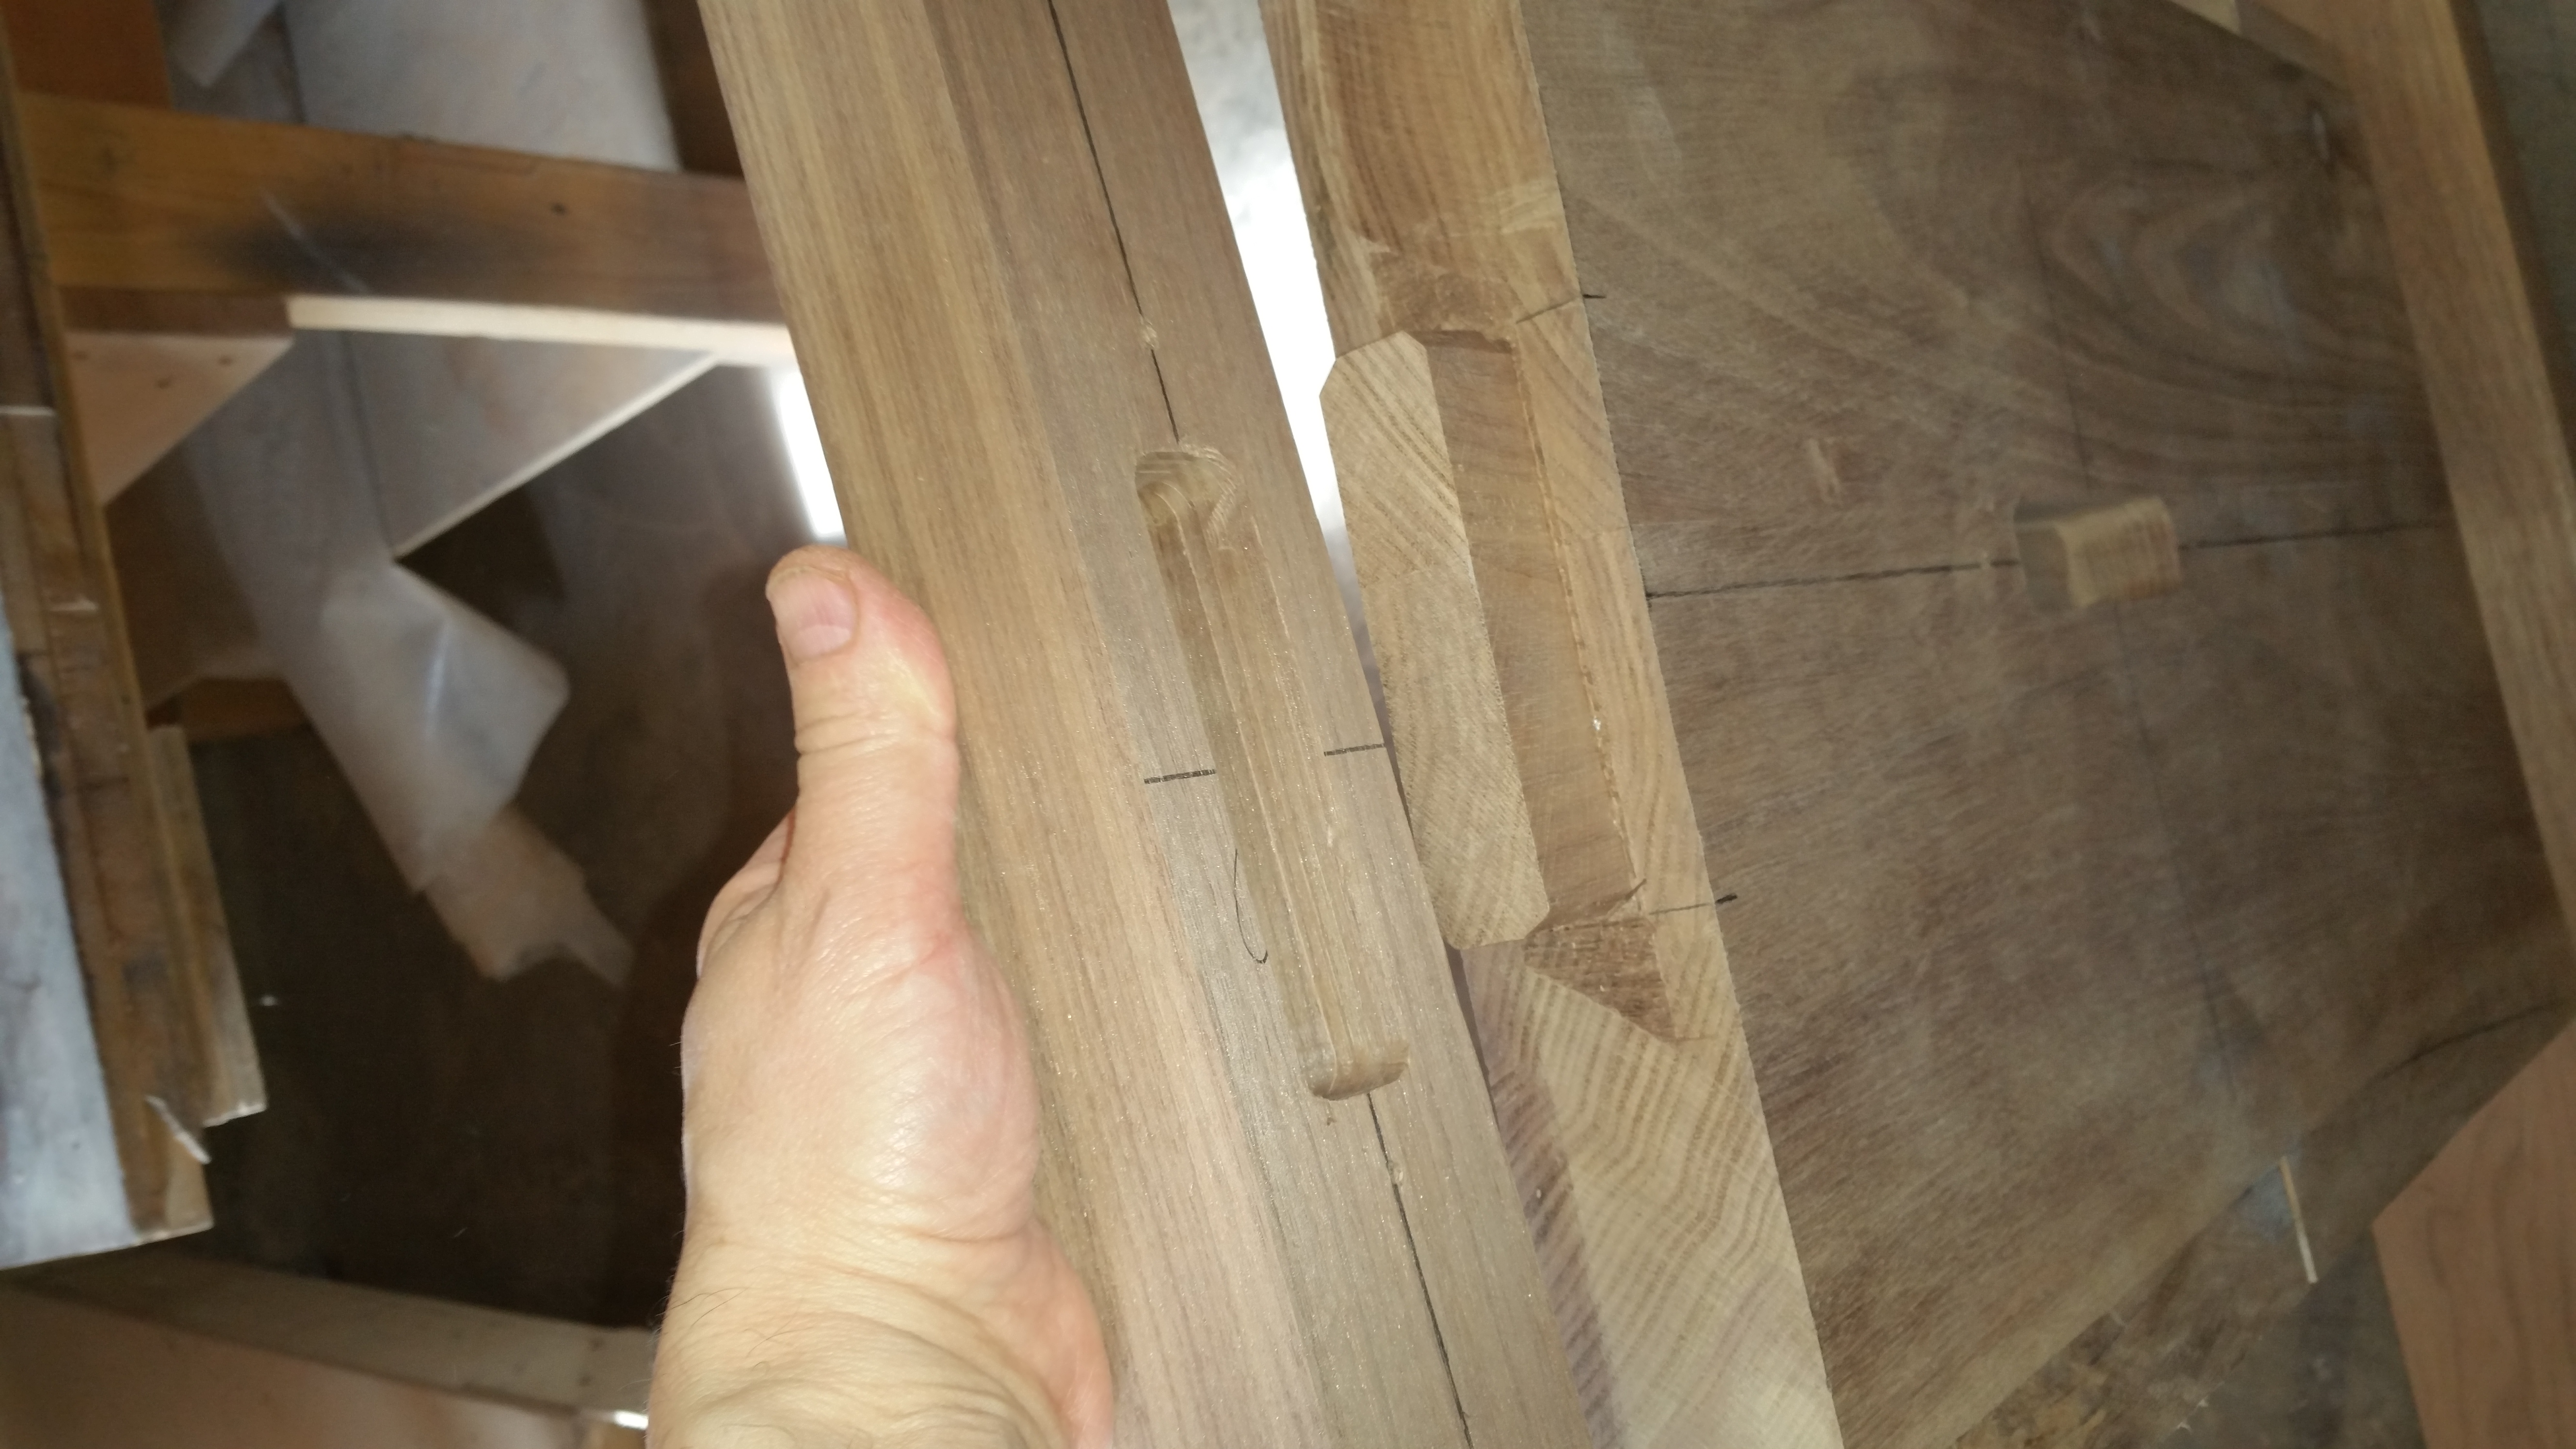 Fitting Mortises and Tenons